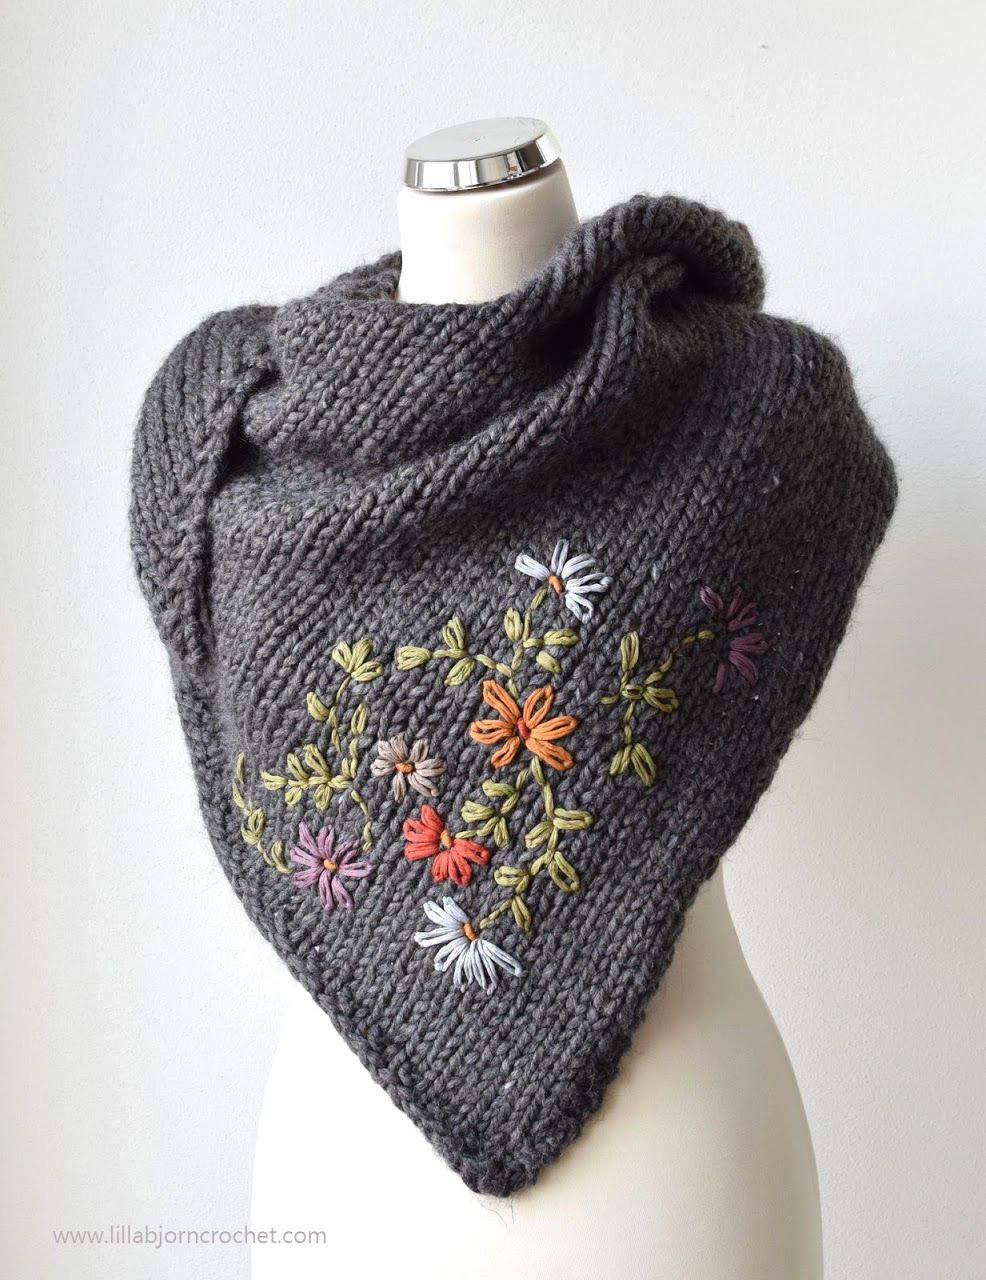 Frida Shawl, and My Embroidery-on-knit Adventure #knitting